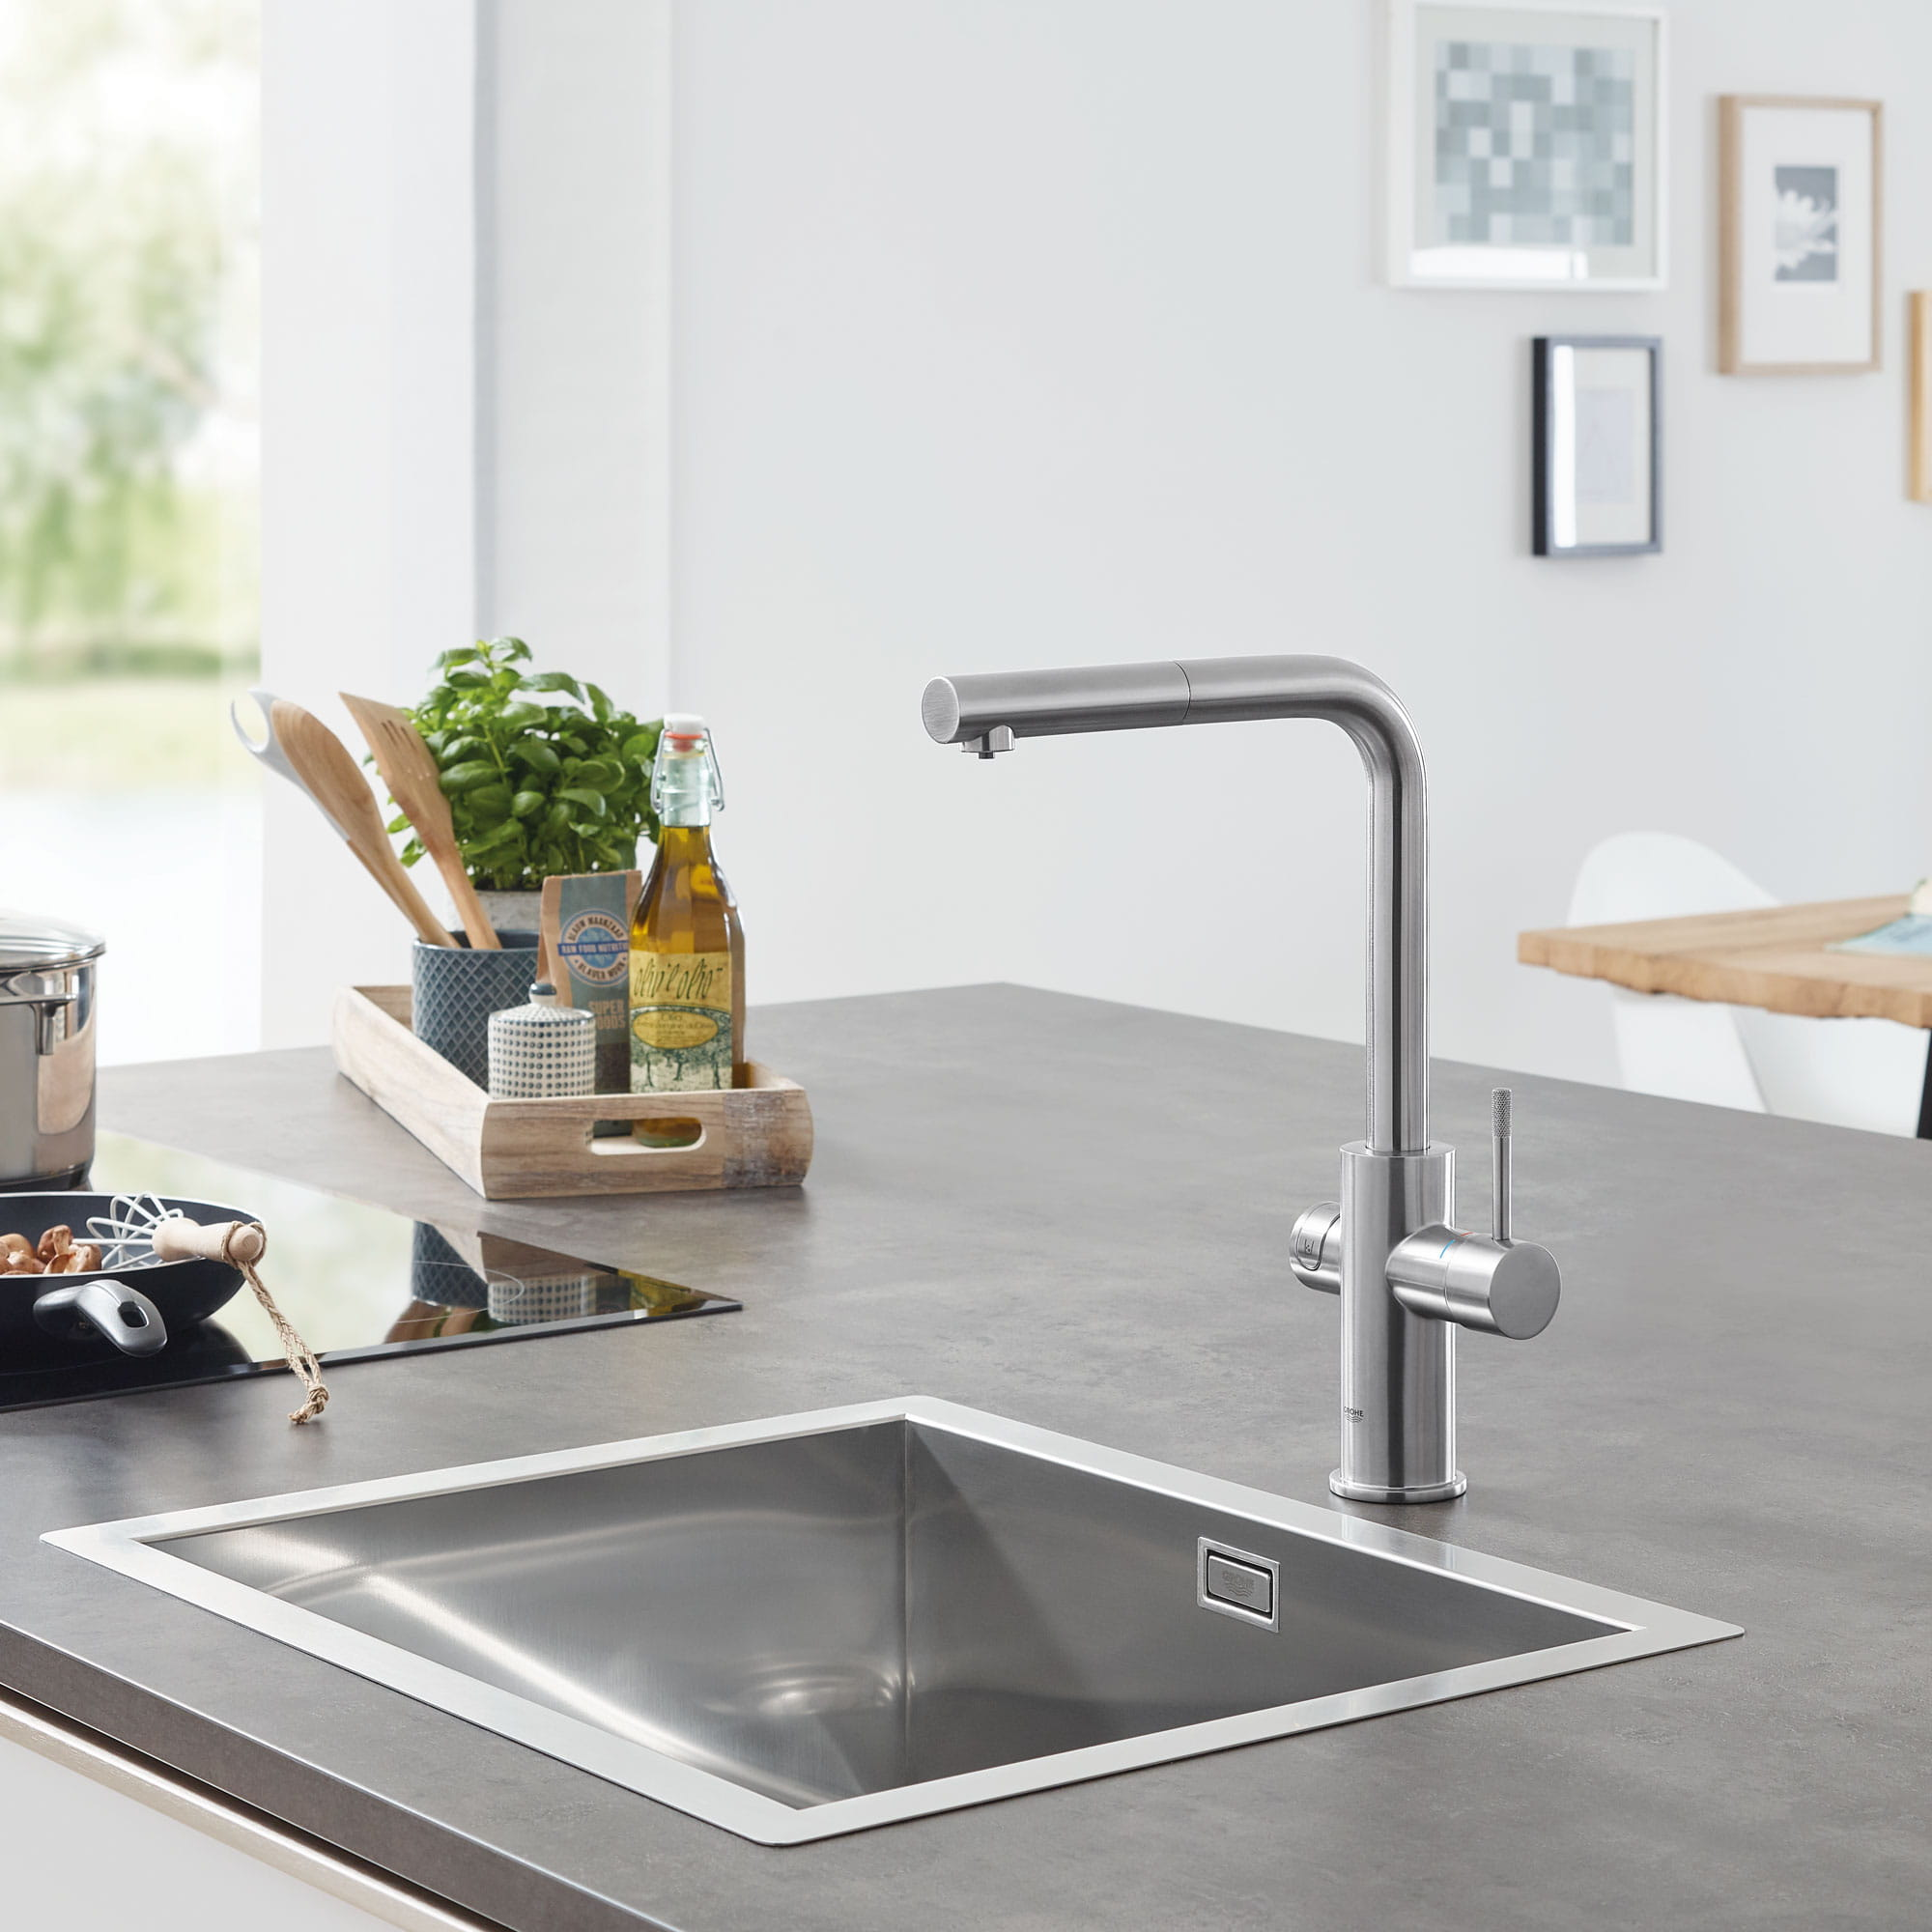 GROHE Blue Chilled & Sparkling robinet de cuisine